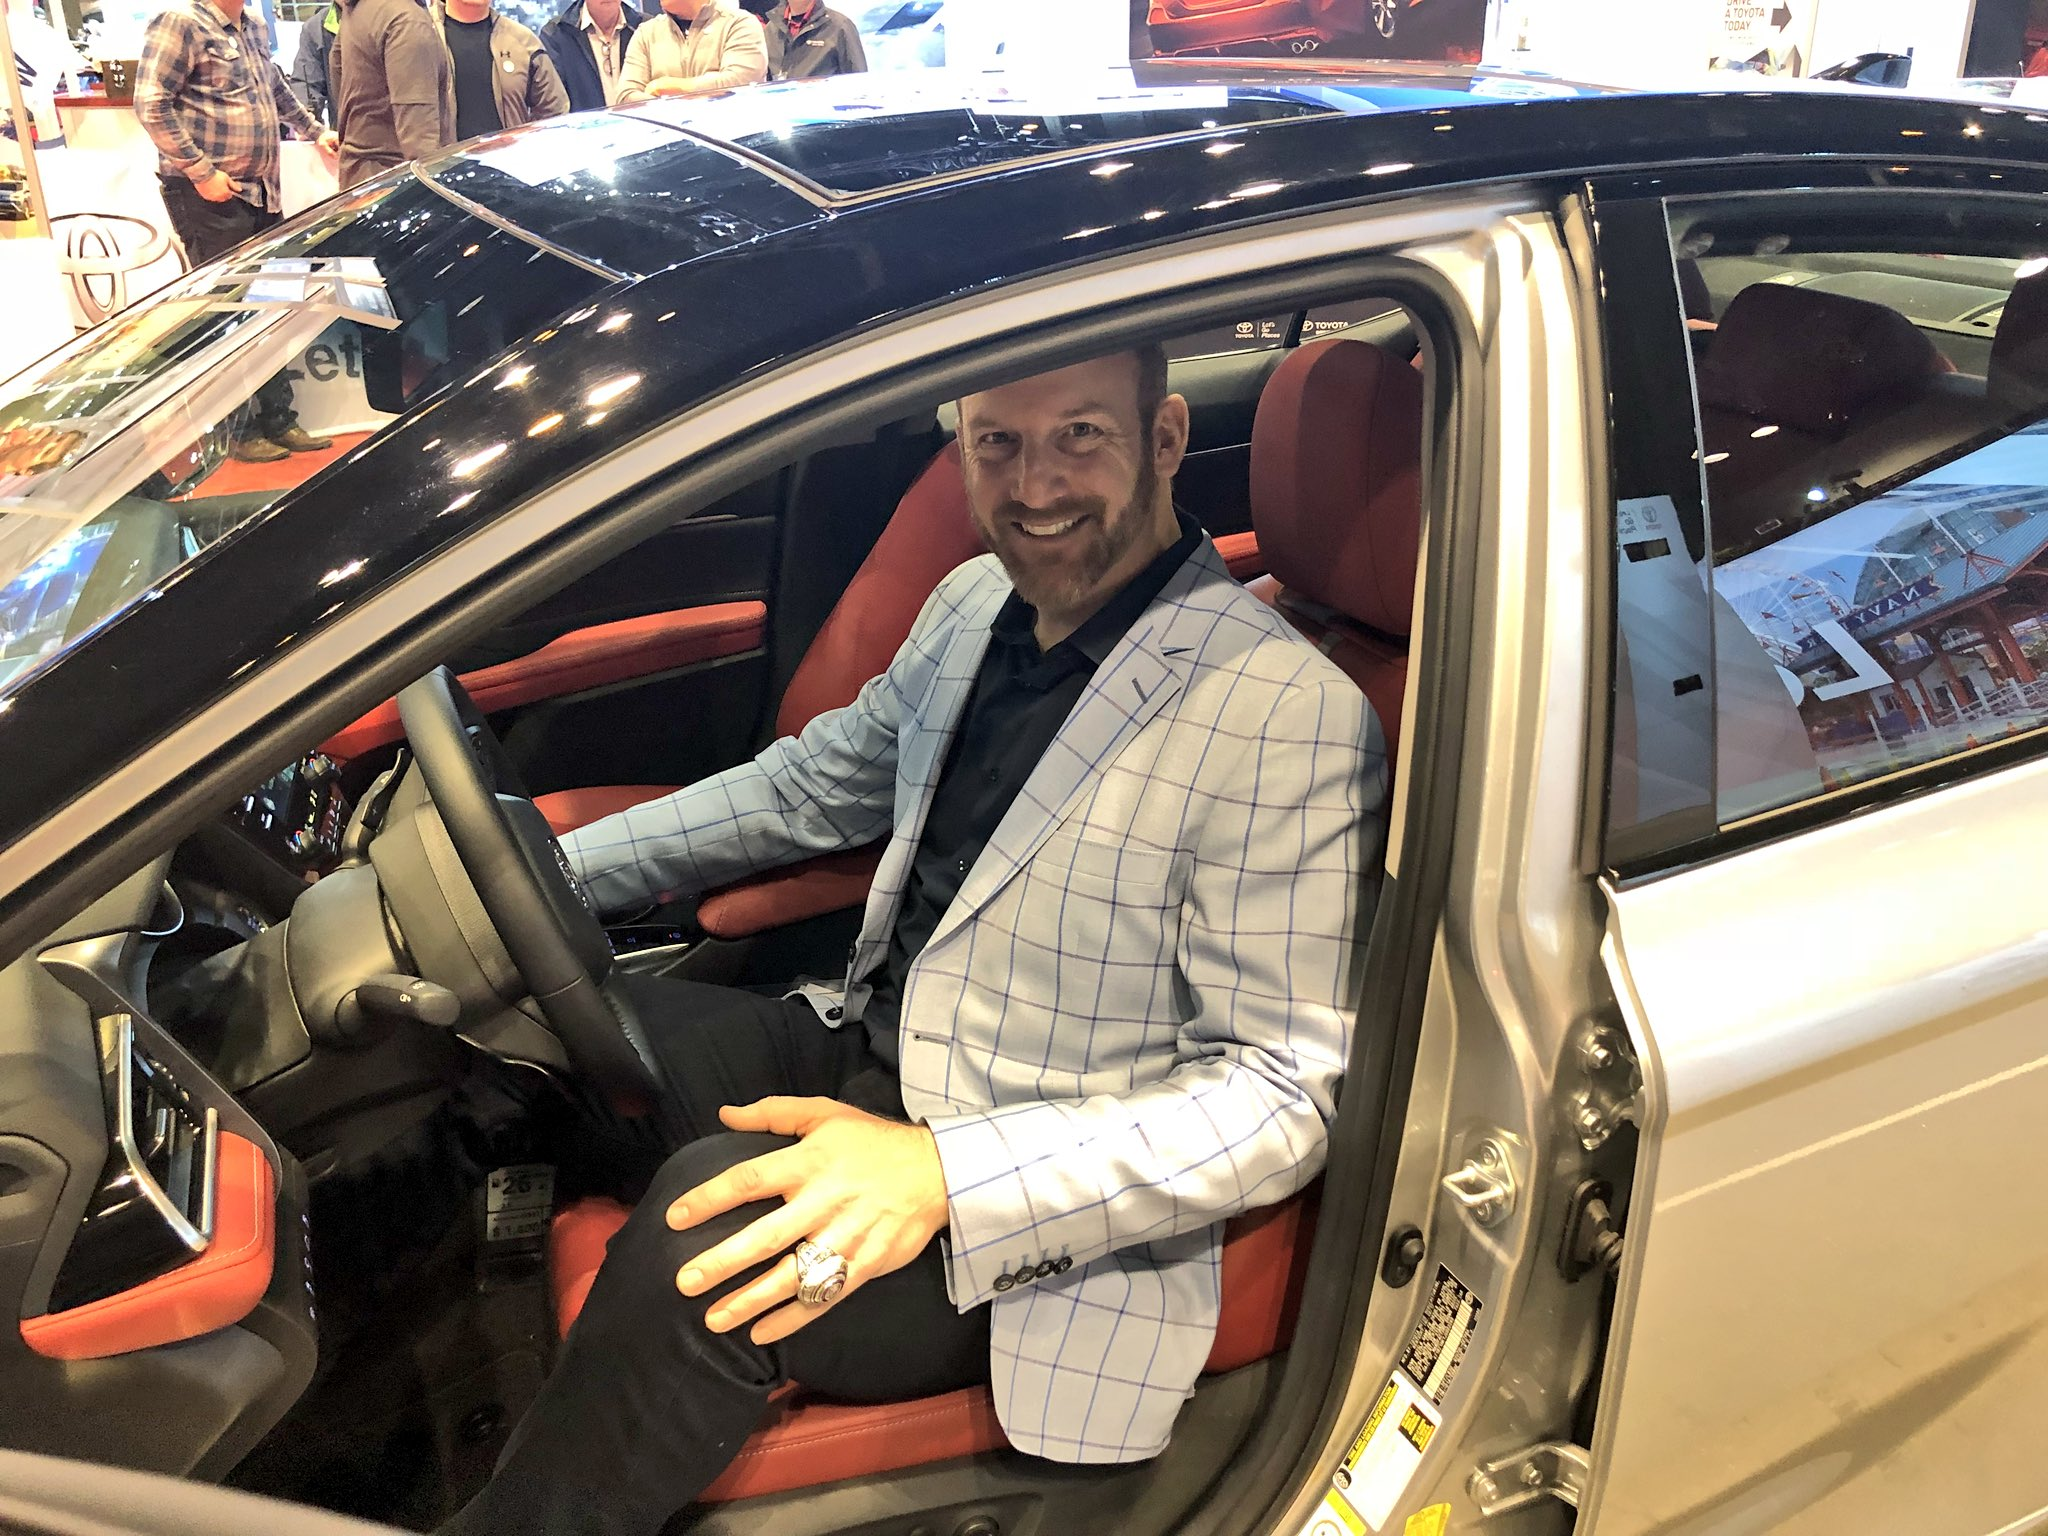 #LetsGoPlaces! @Dempster46 stops by #CAS18 with @Toyota on Facebook Live now: https://t.co/UJ695C2nKR https://t.co/e82iy2GhqS